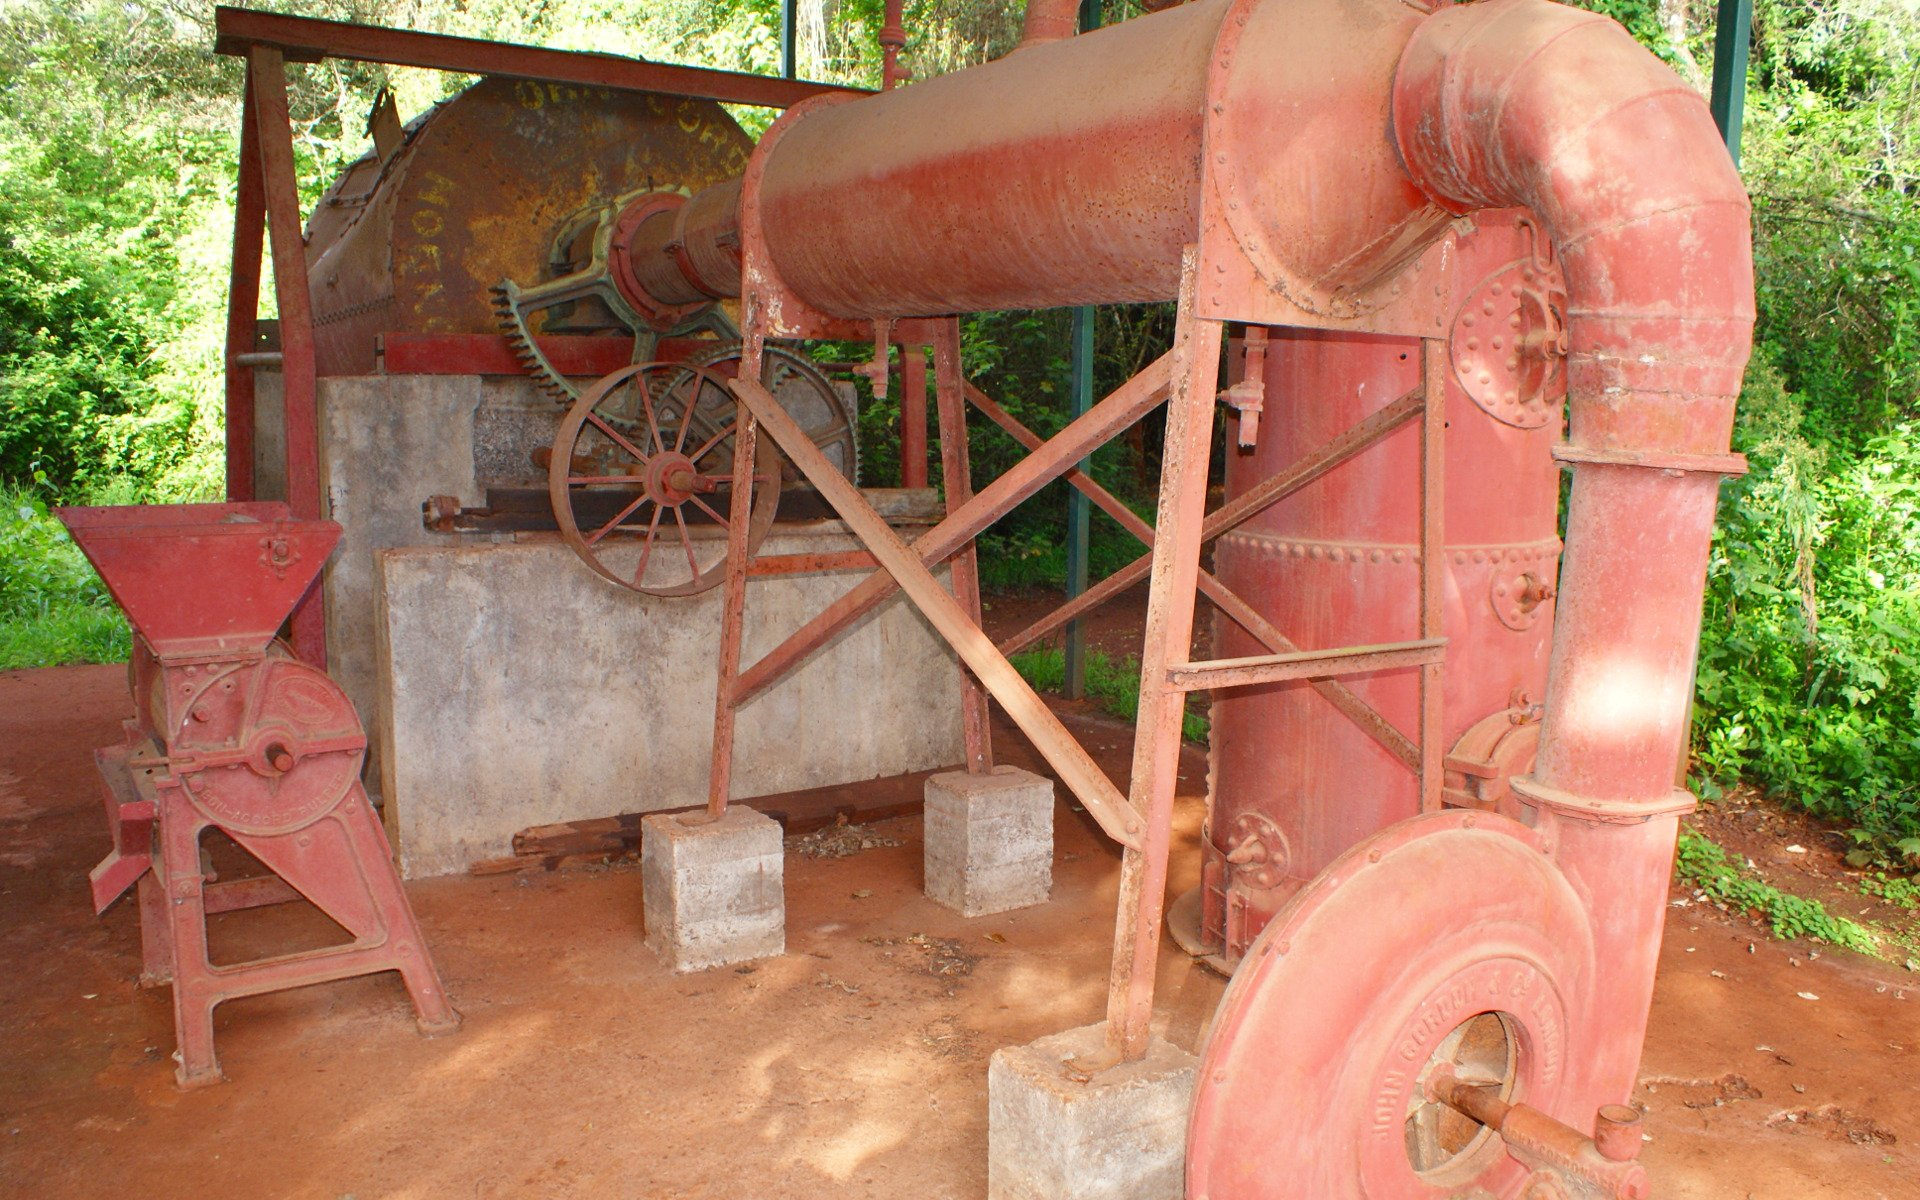 The roasting machine that Karen used to process coffee from her farm was a behemoth of a contraption. Located some distance from the house, this particular one is sadly a replica.